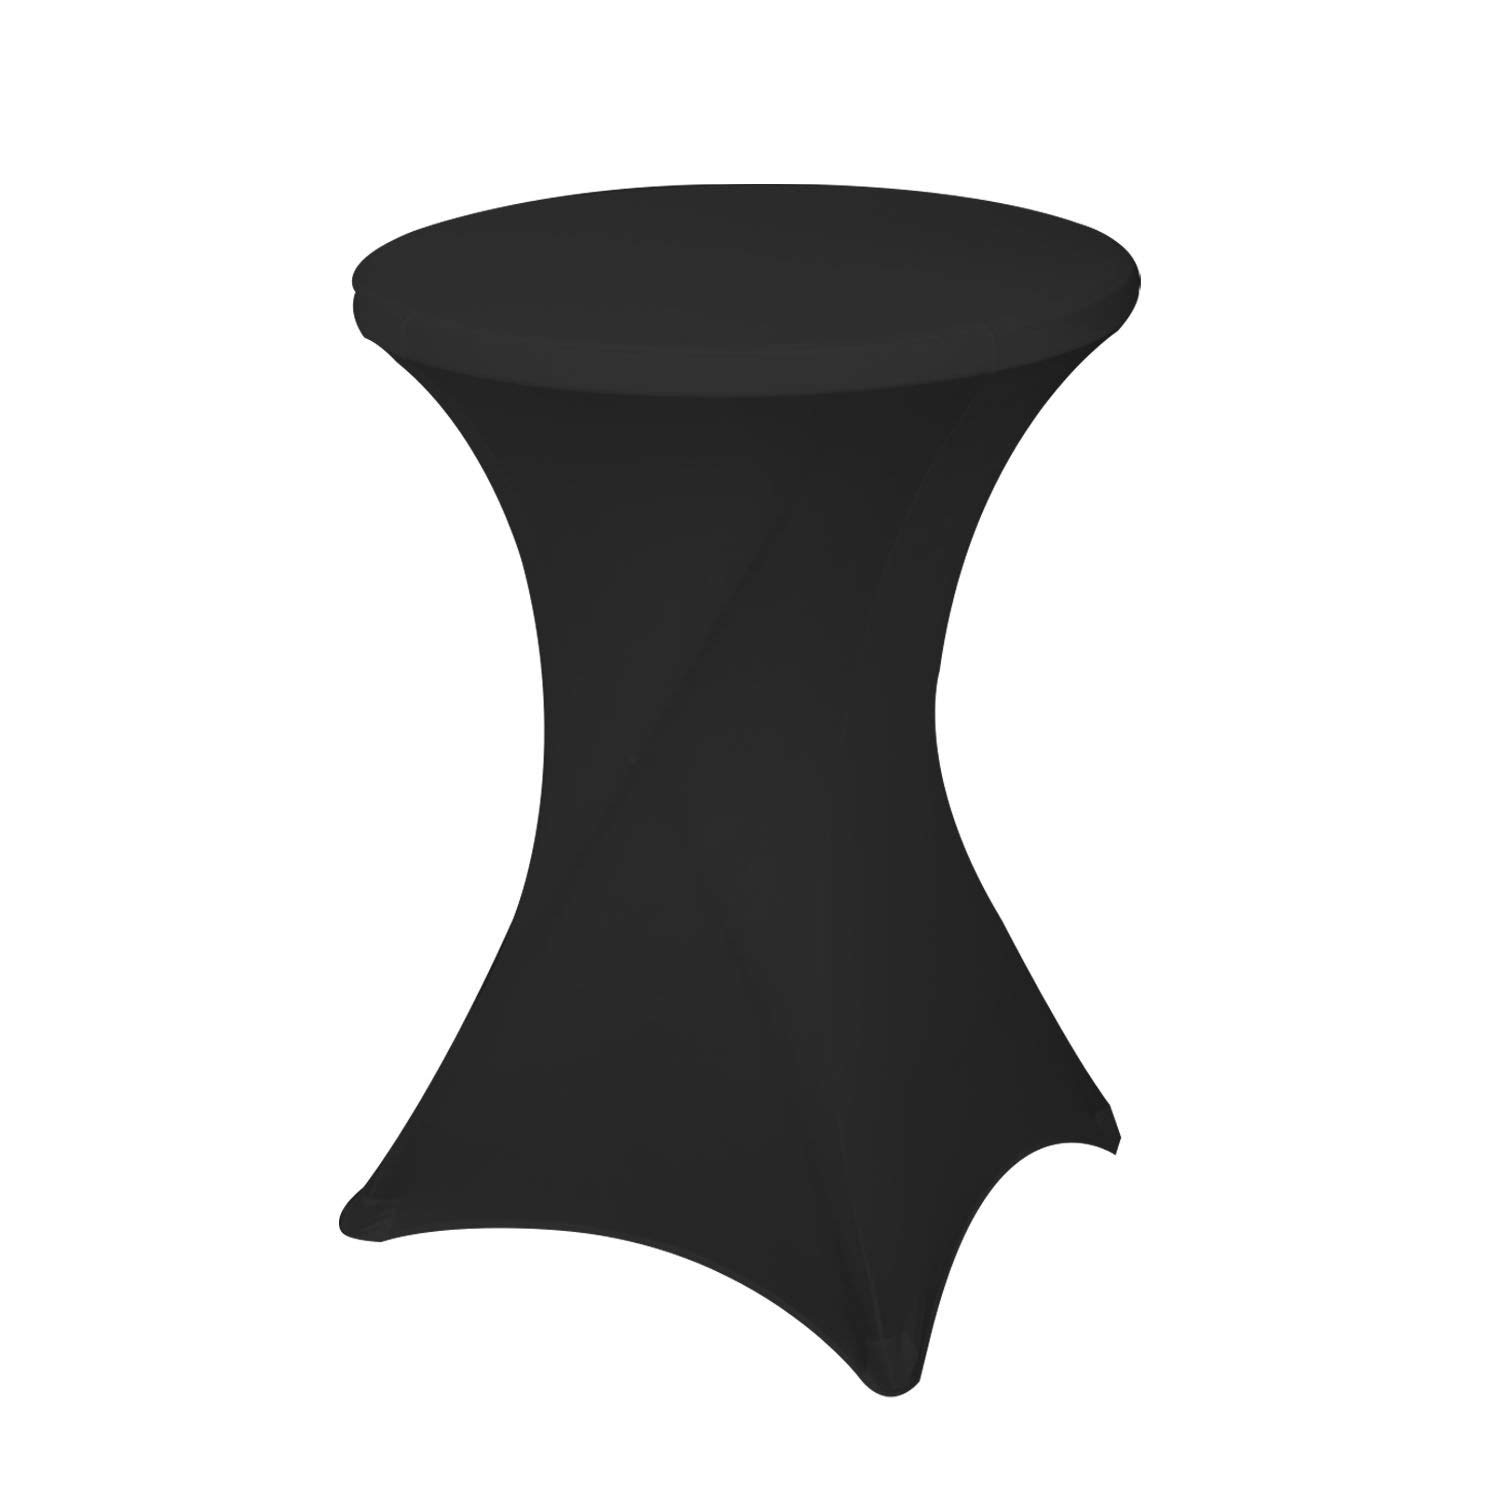 Awillhome 32 Inch /24 Inch Spandex Cocktail Tablecloth Fitted Table Cover Fit Round Folding Table Dry Bar Bistro Table Cover (32inx43in, Black)